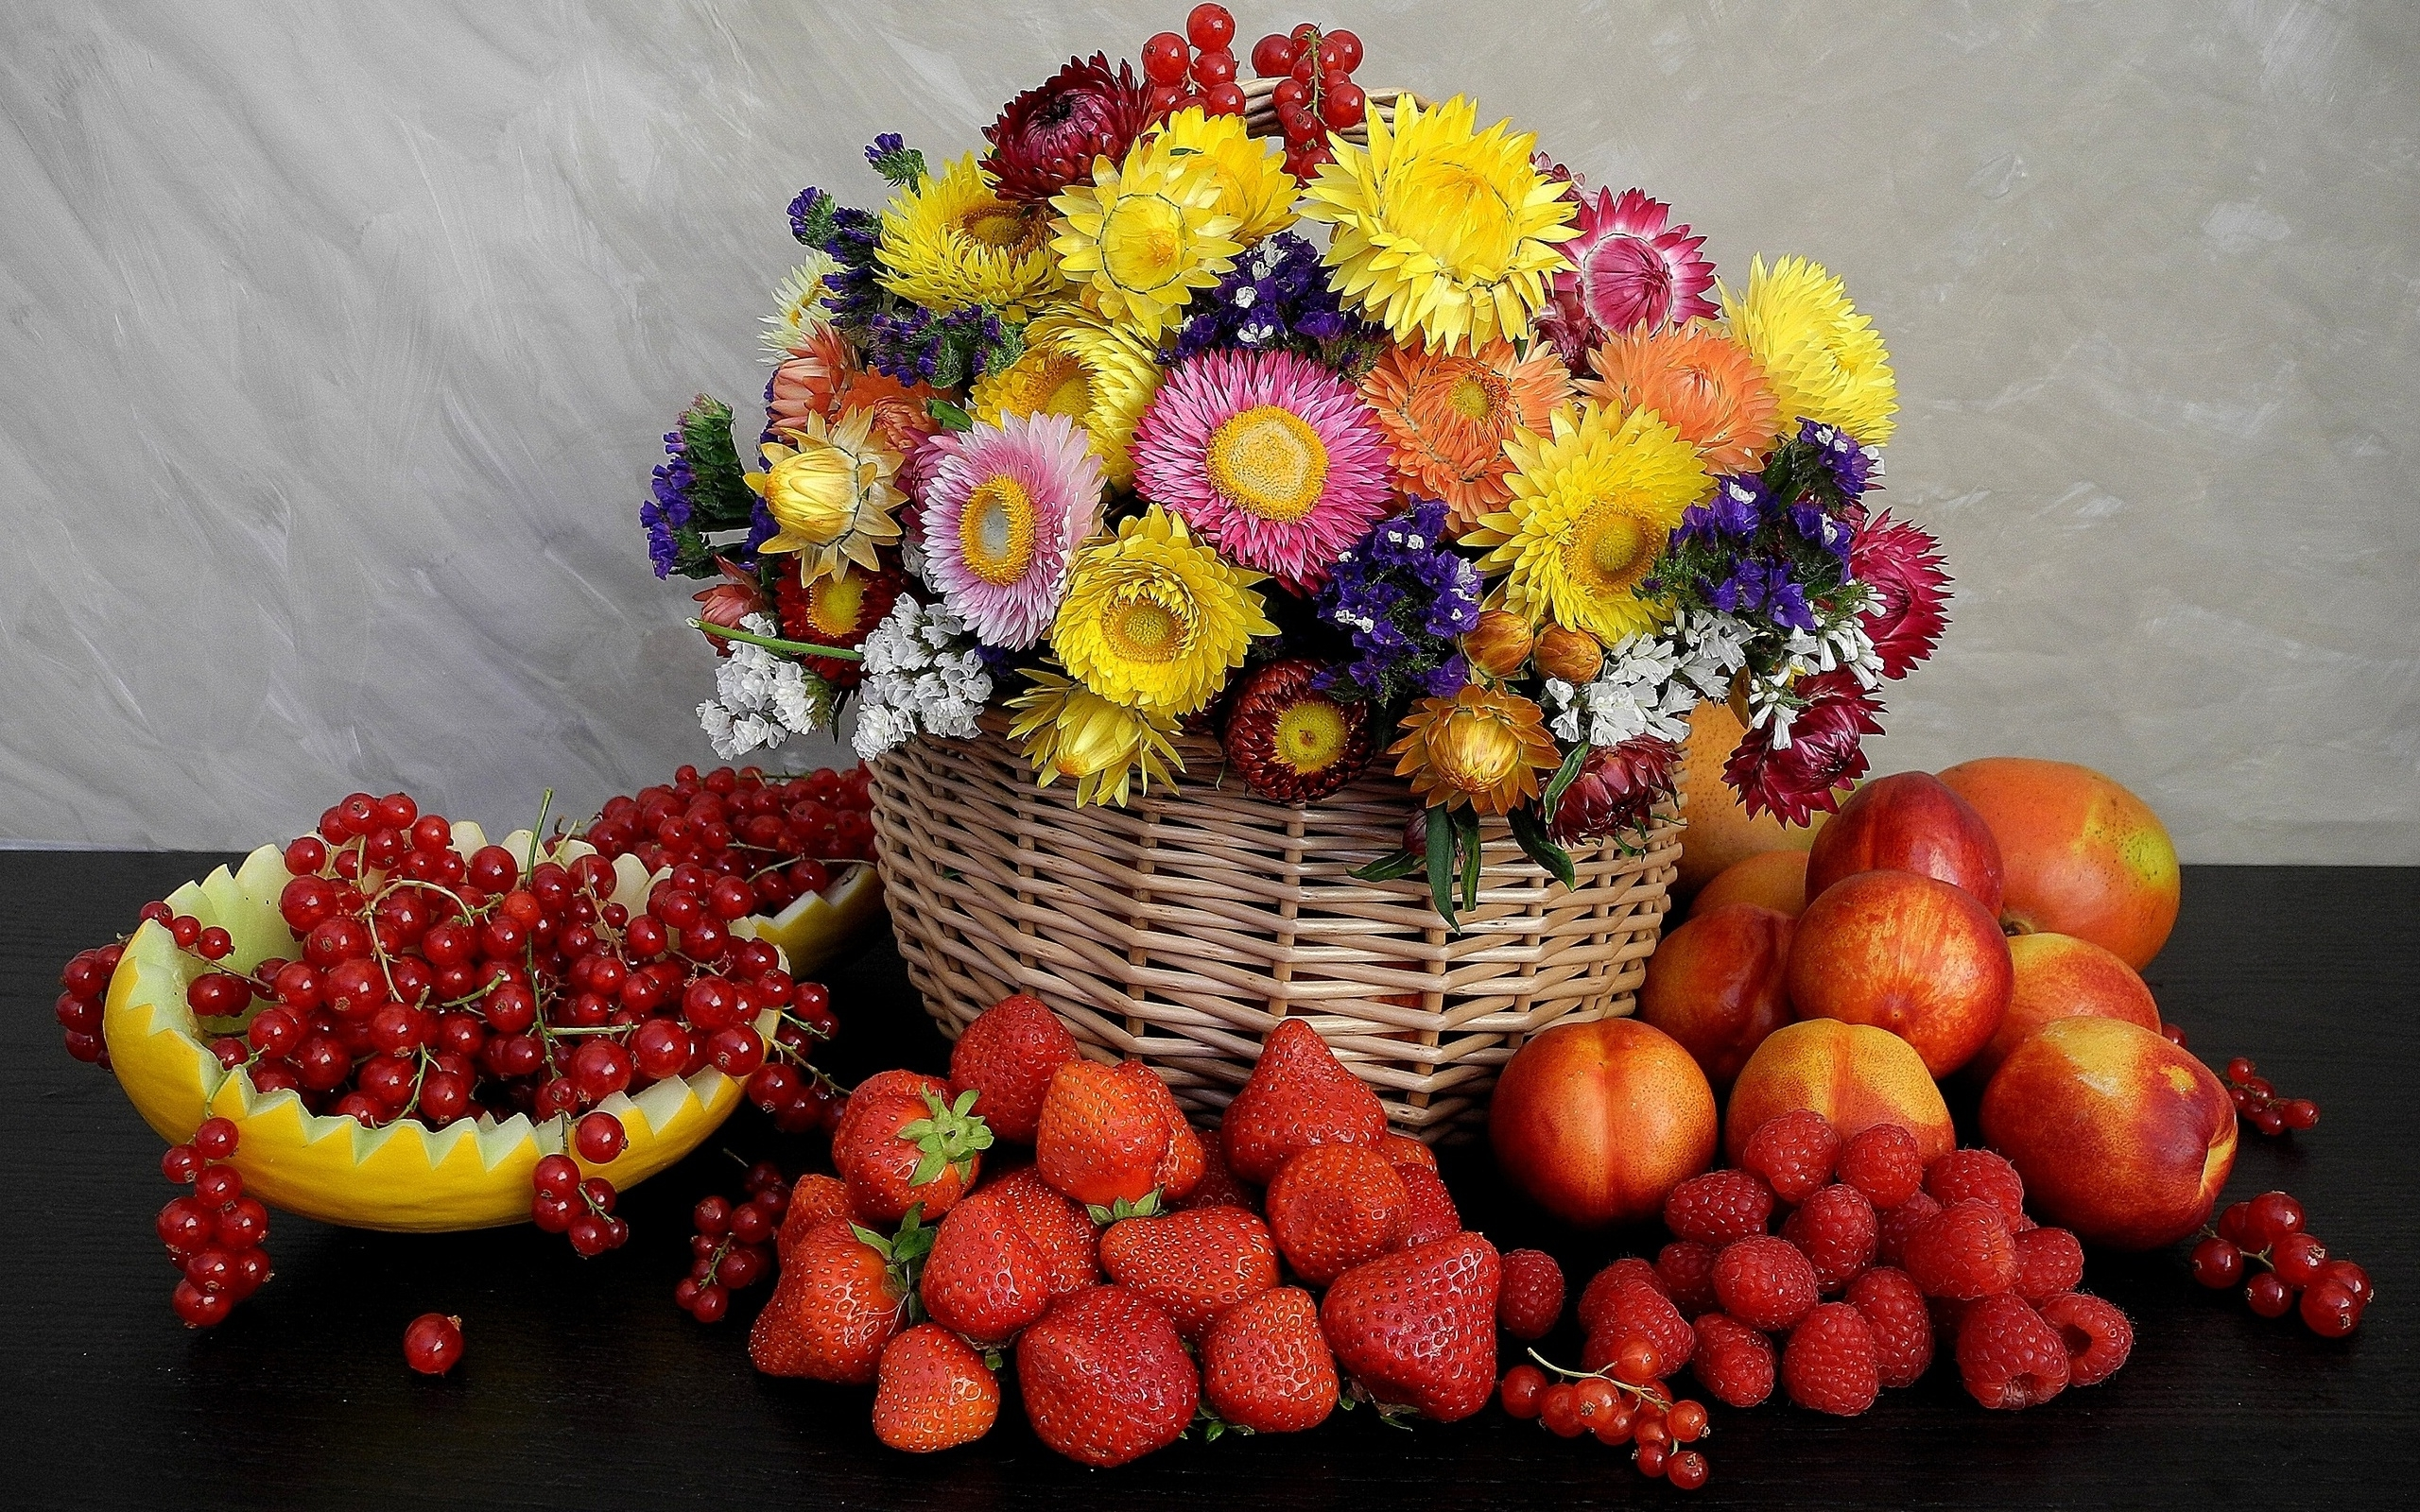 Fruits and Flowers HD wallpaper